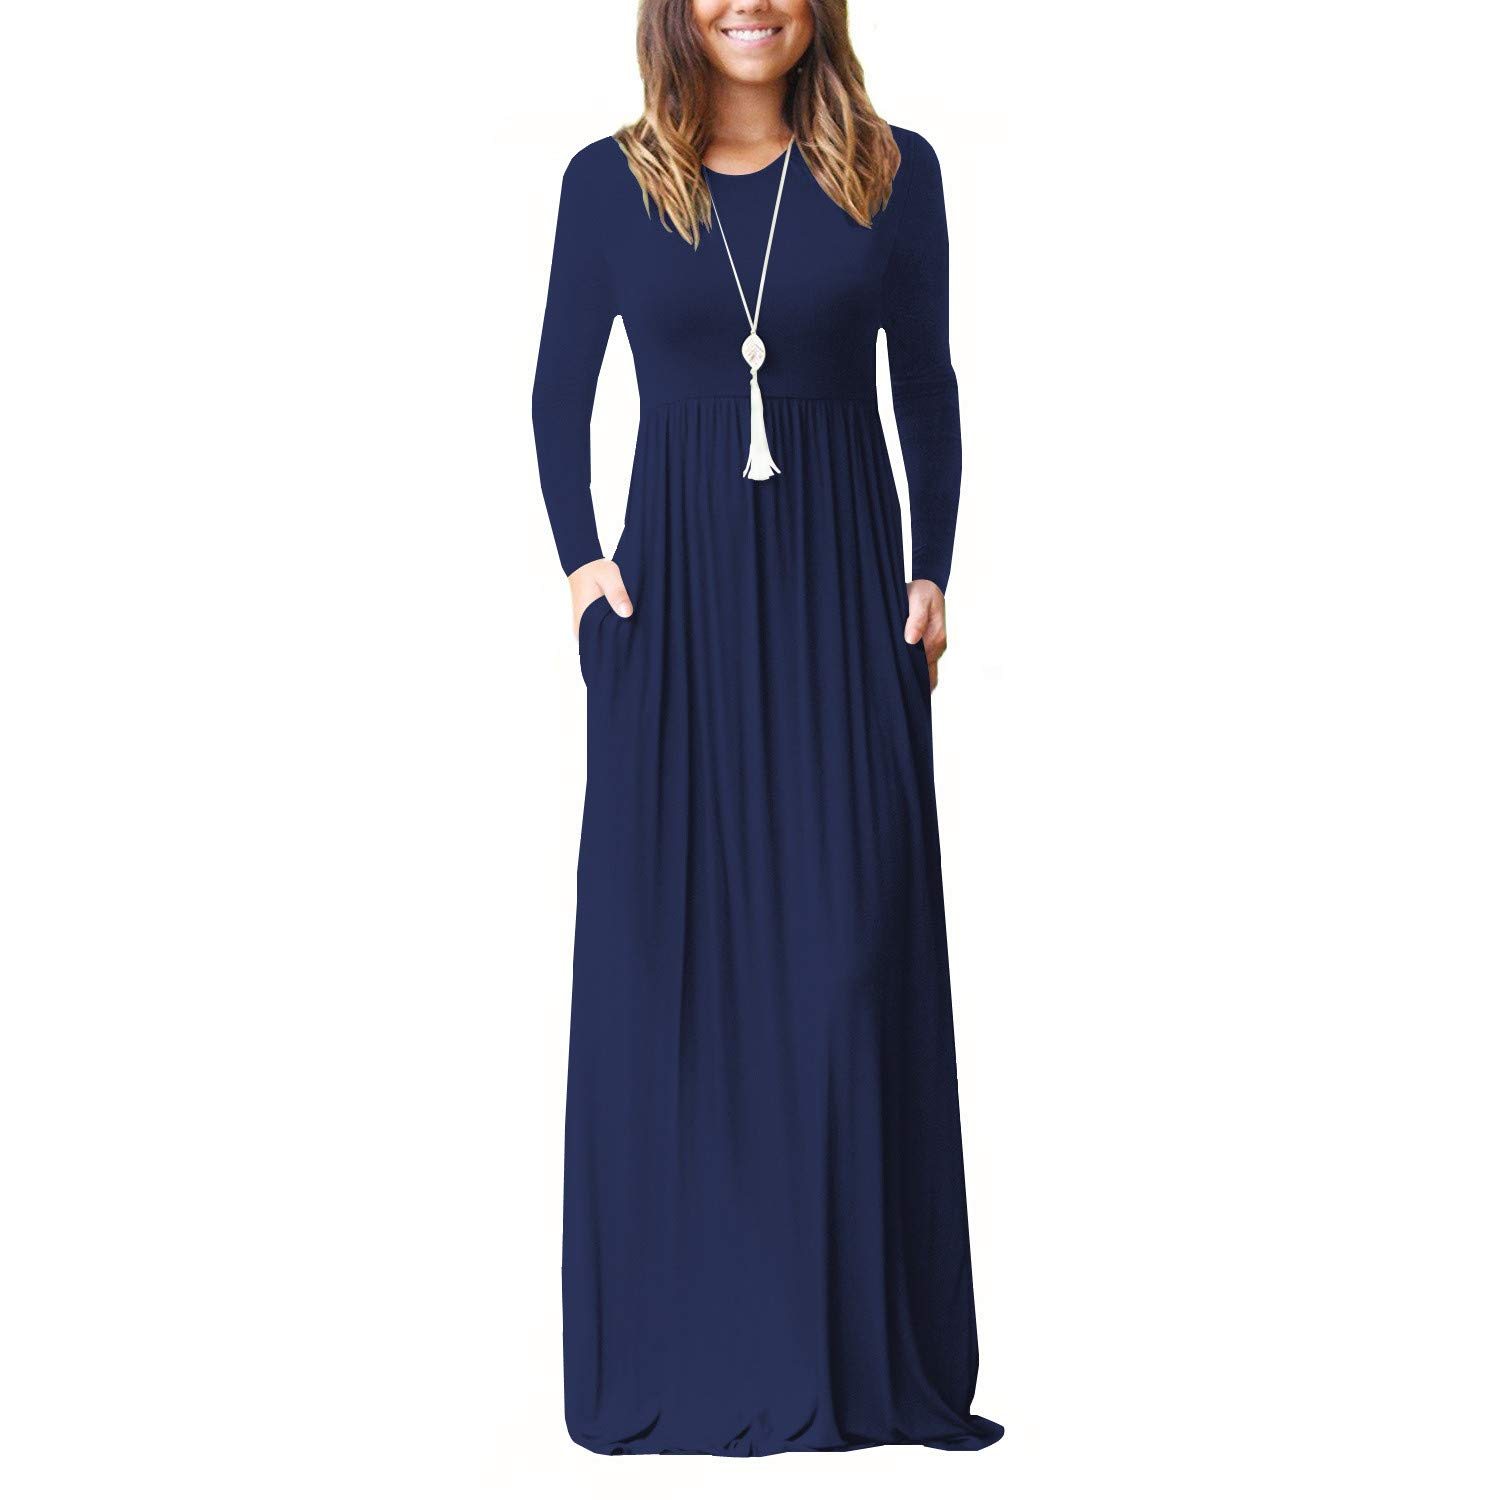 Navy bluee AWUWE Women Long Sleeve Loose Plain Maxi Dress Casual Long Dresses with Pockets